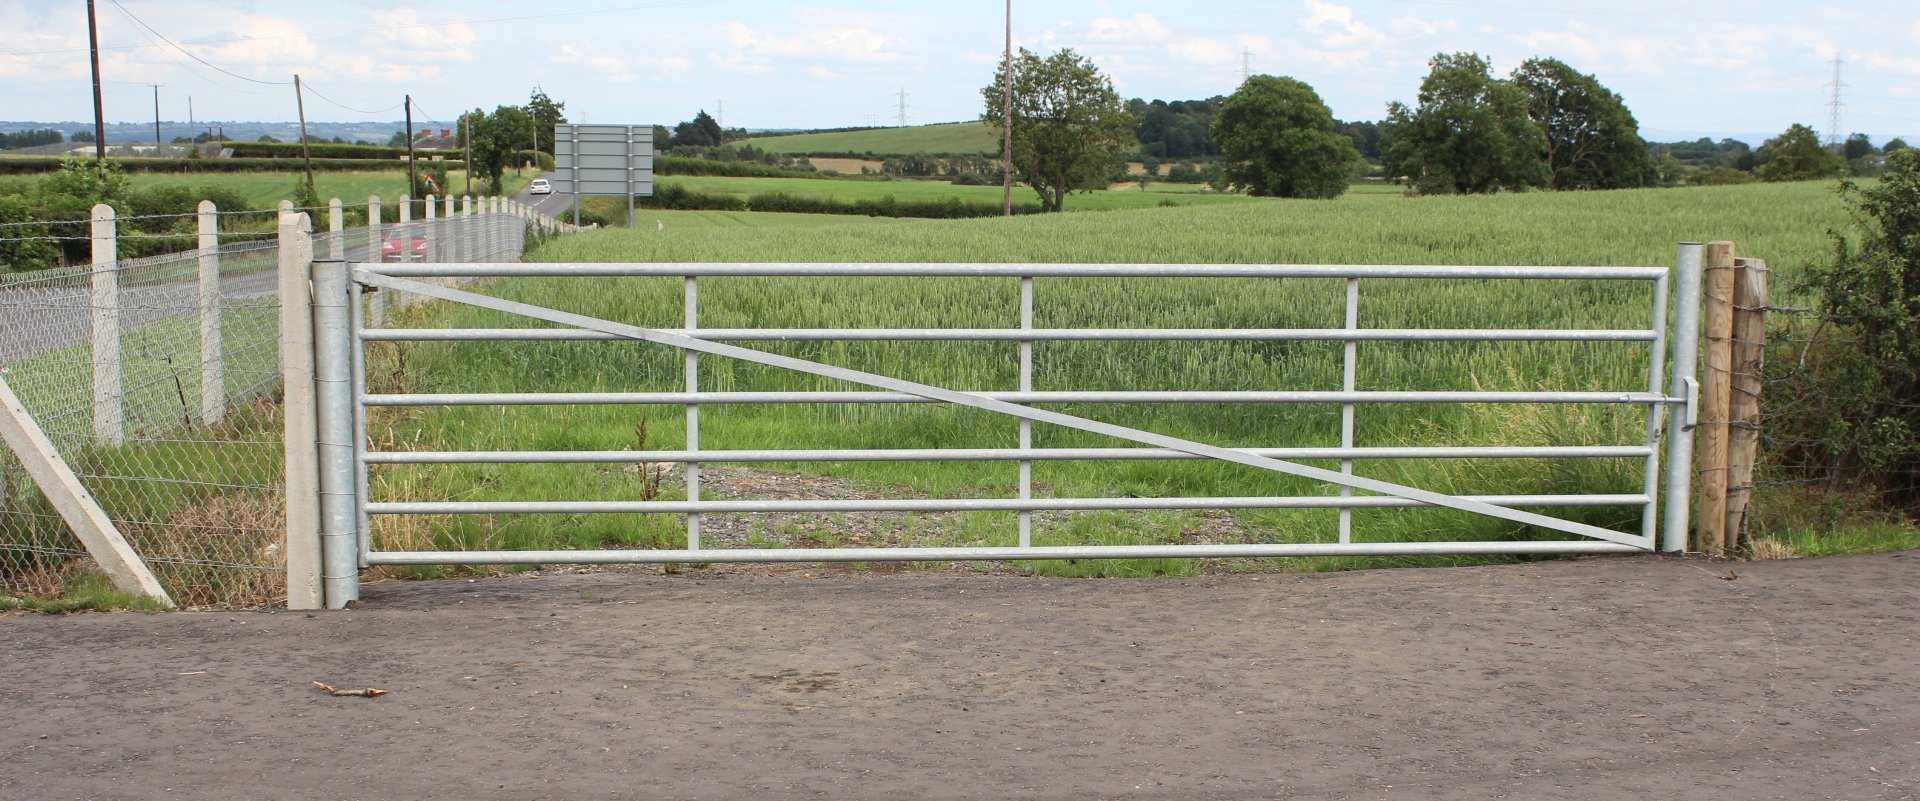 Farm Gates Cattle